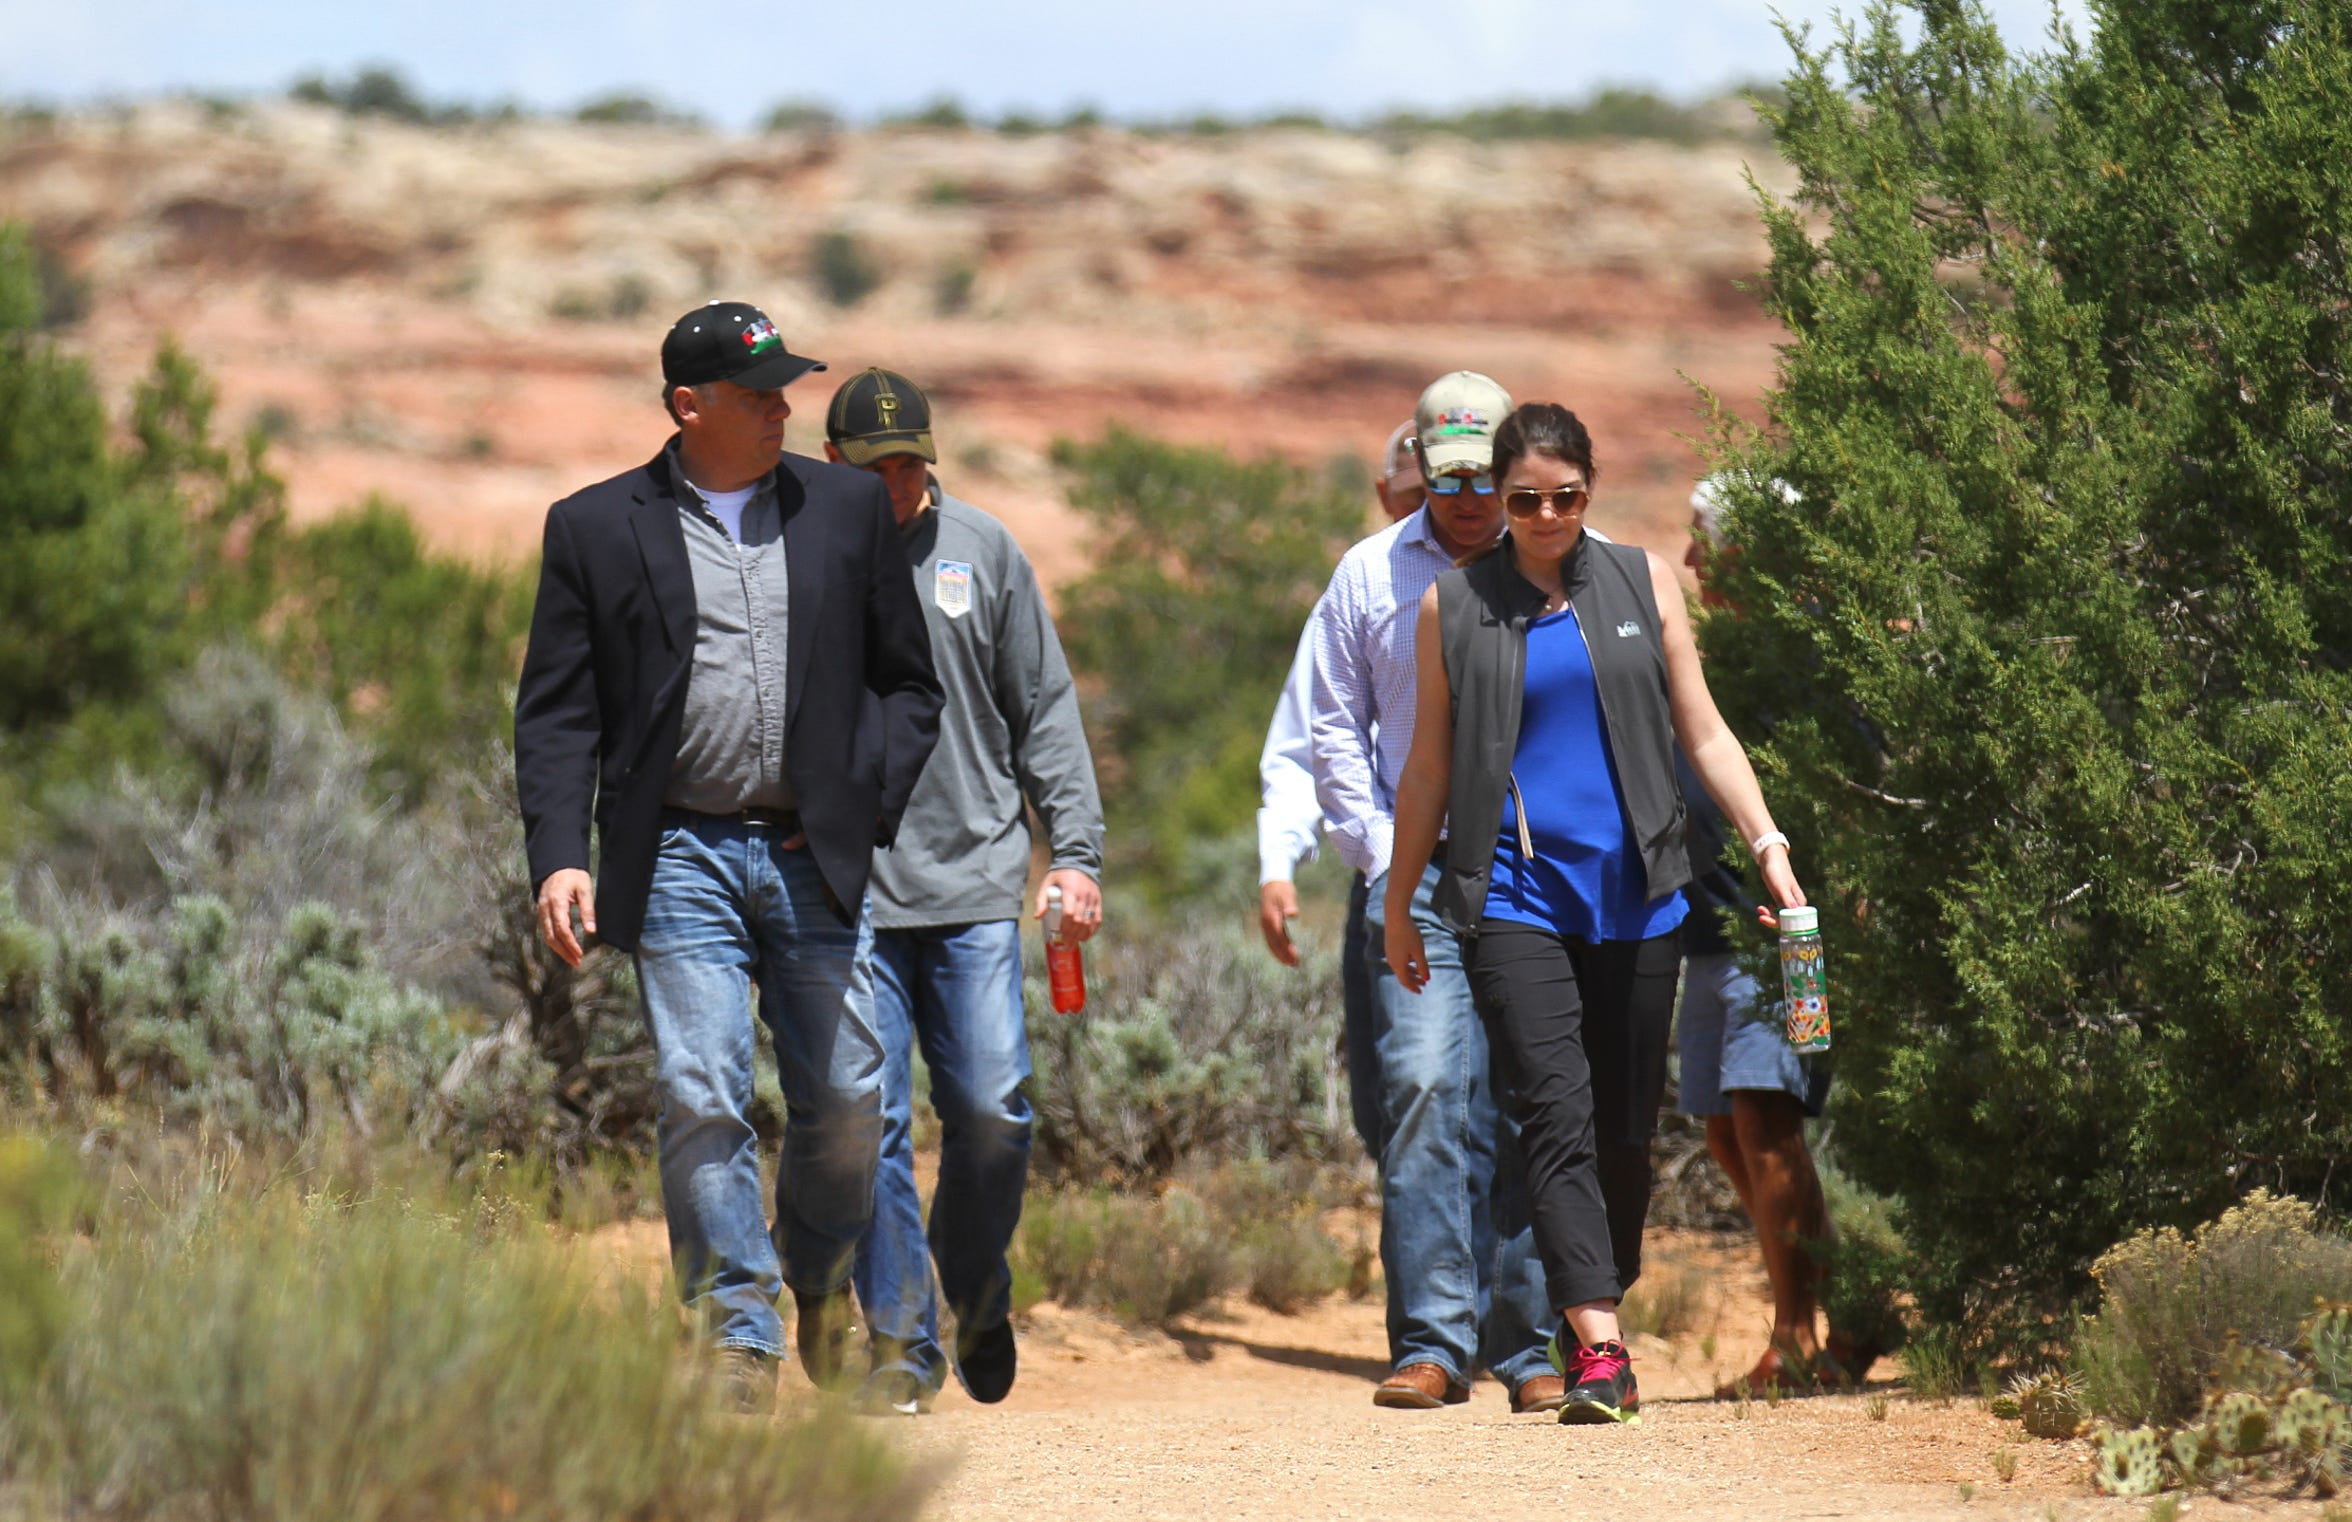 San Juan County, Utah, Commissioner Phil Lyman, left, makes his way to a press conference,  Monday,May 8, 2017 at Butler Wash southwest of Blanding, Utah.